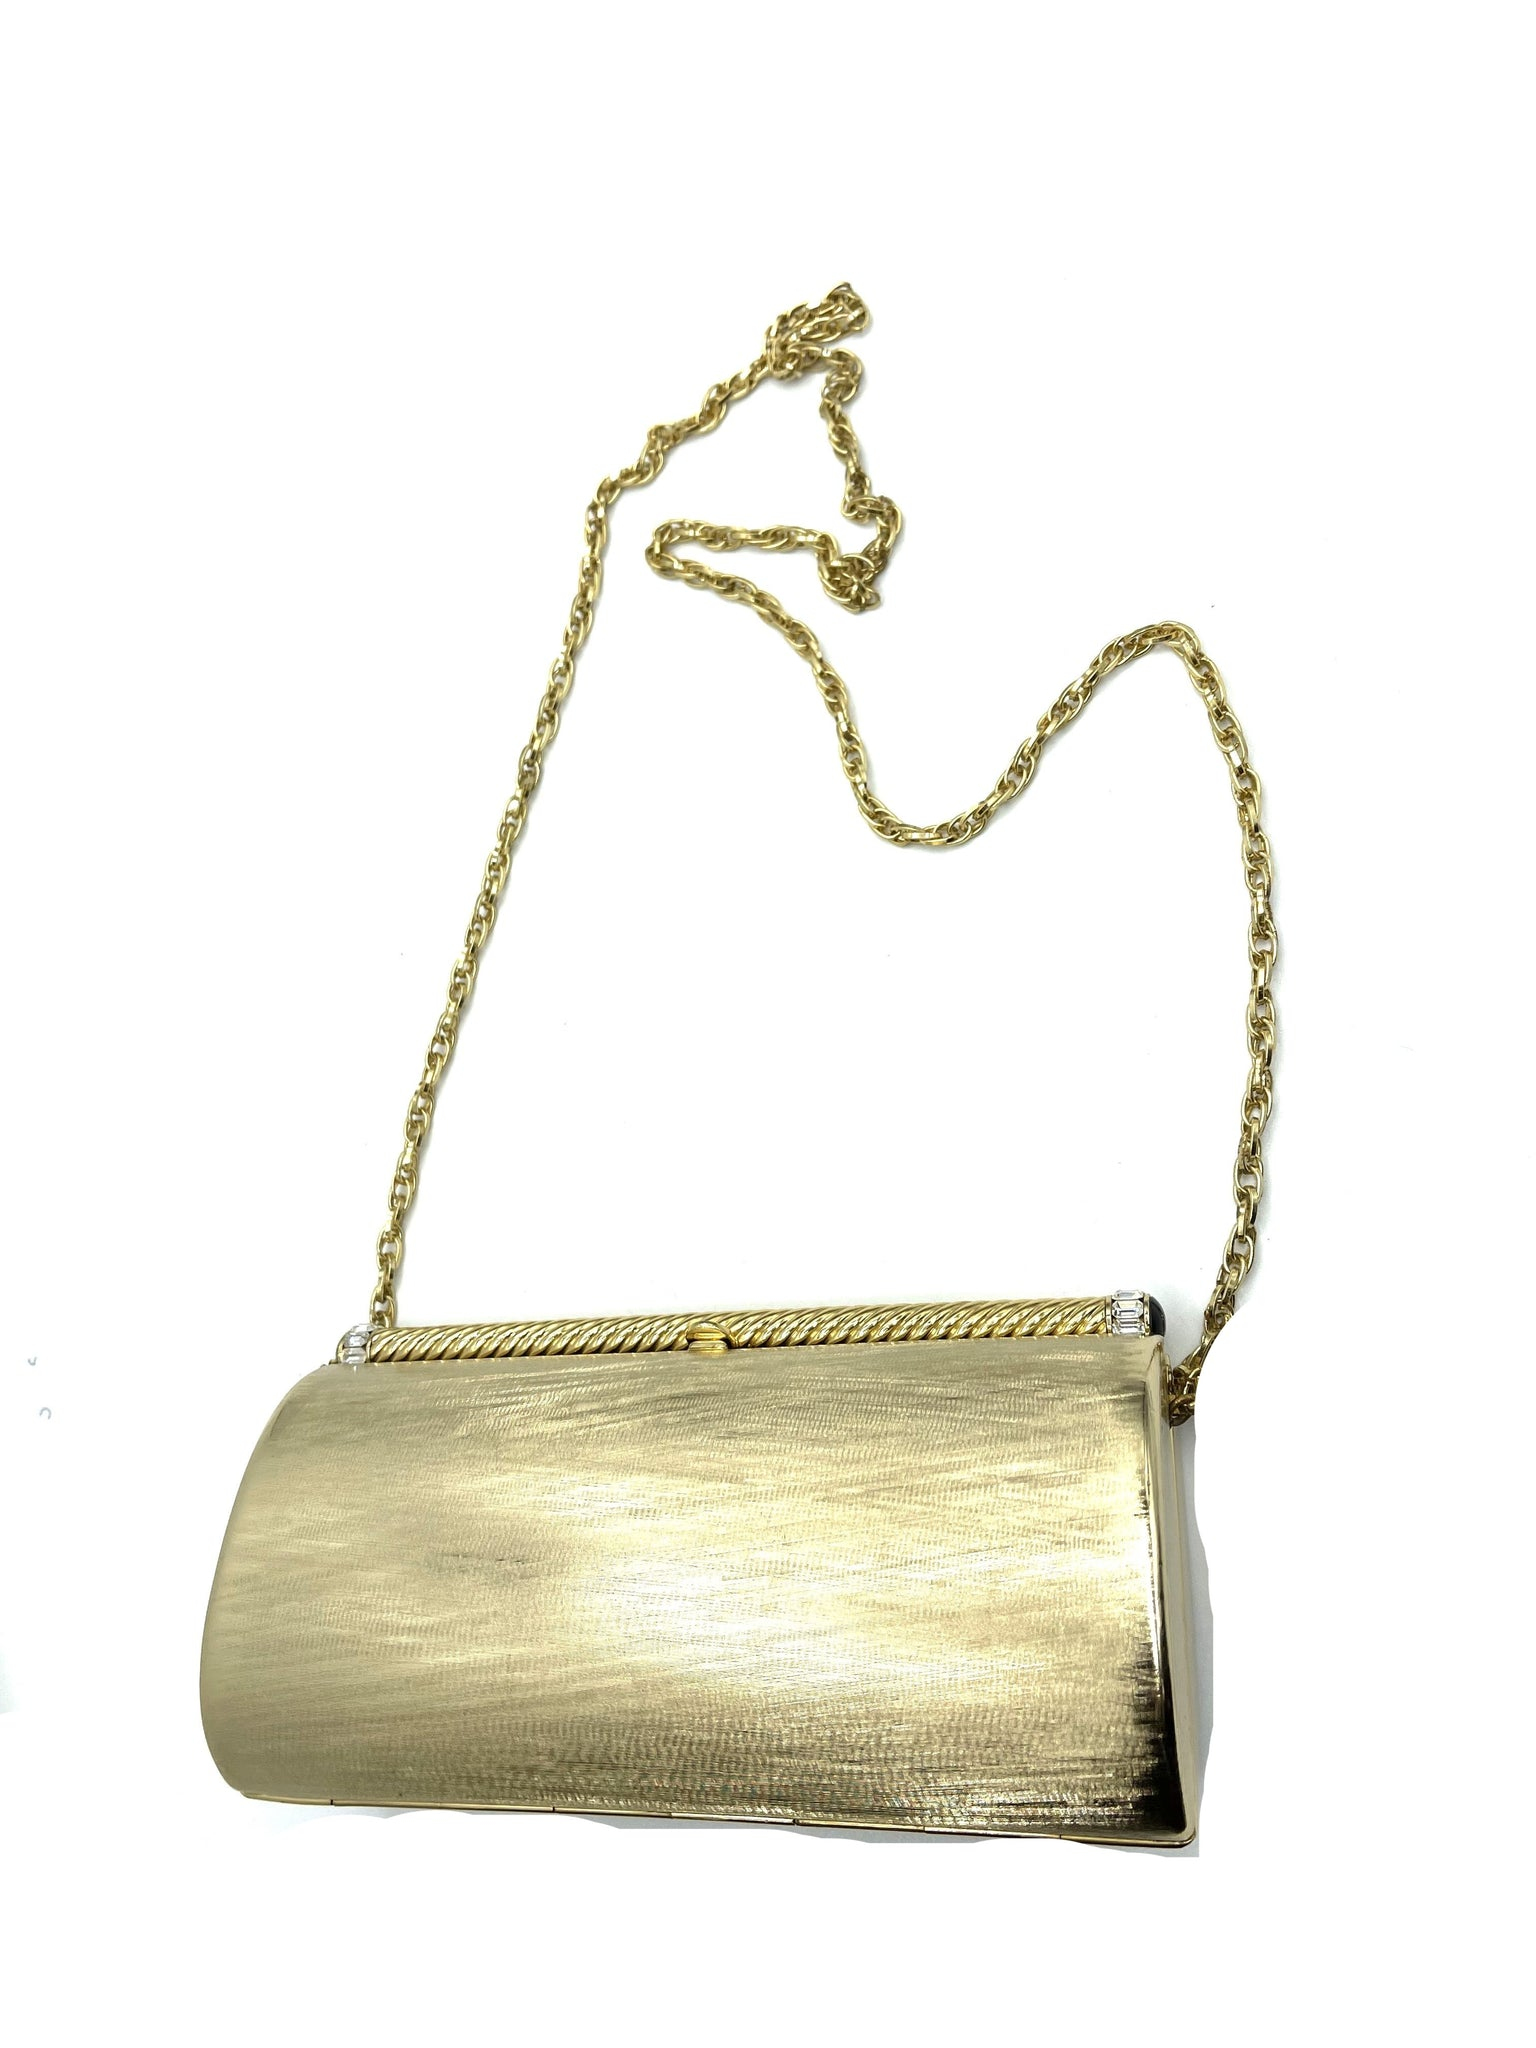 Rodo 80s Gold Tone Evening Clutch WITH CHAIN 2 of 4